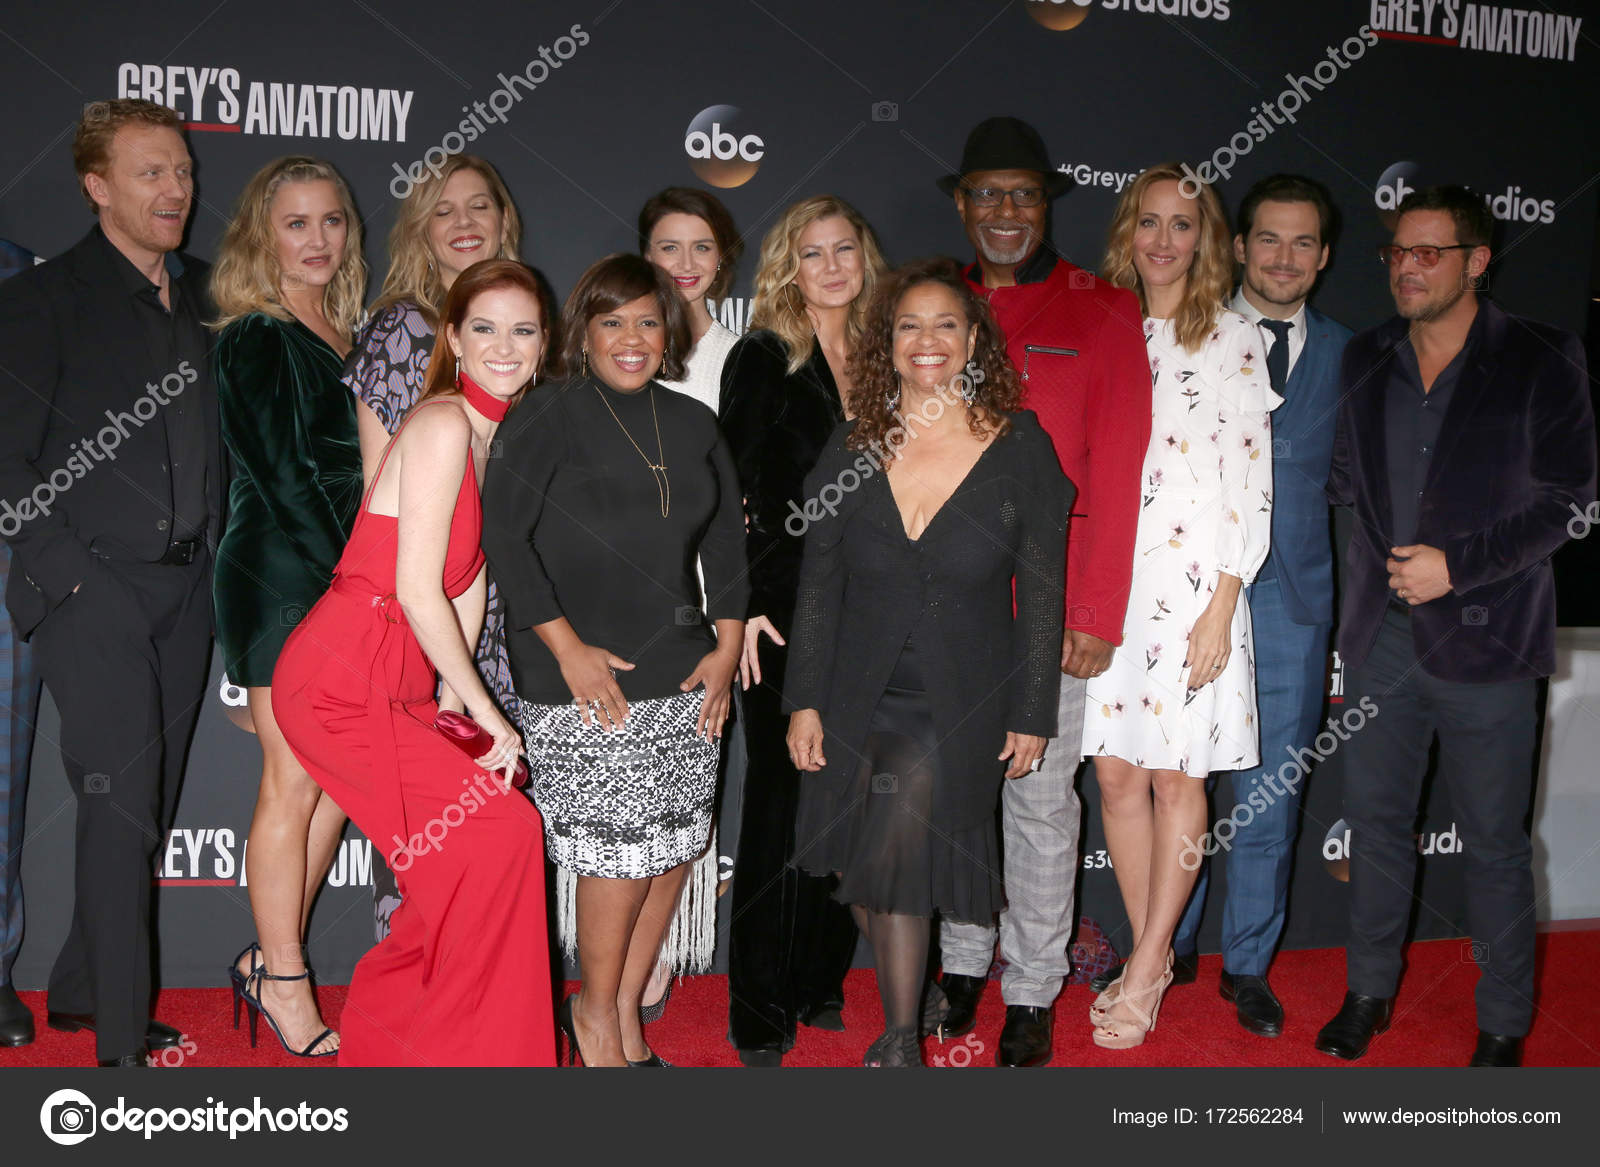 Greys Anatomy Cast Grey Anatomy 300Th Episode Event Tao Los – Stock ...